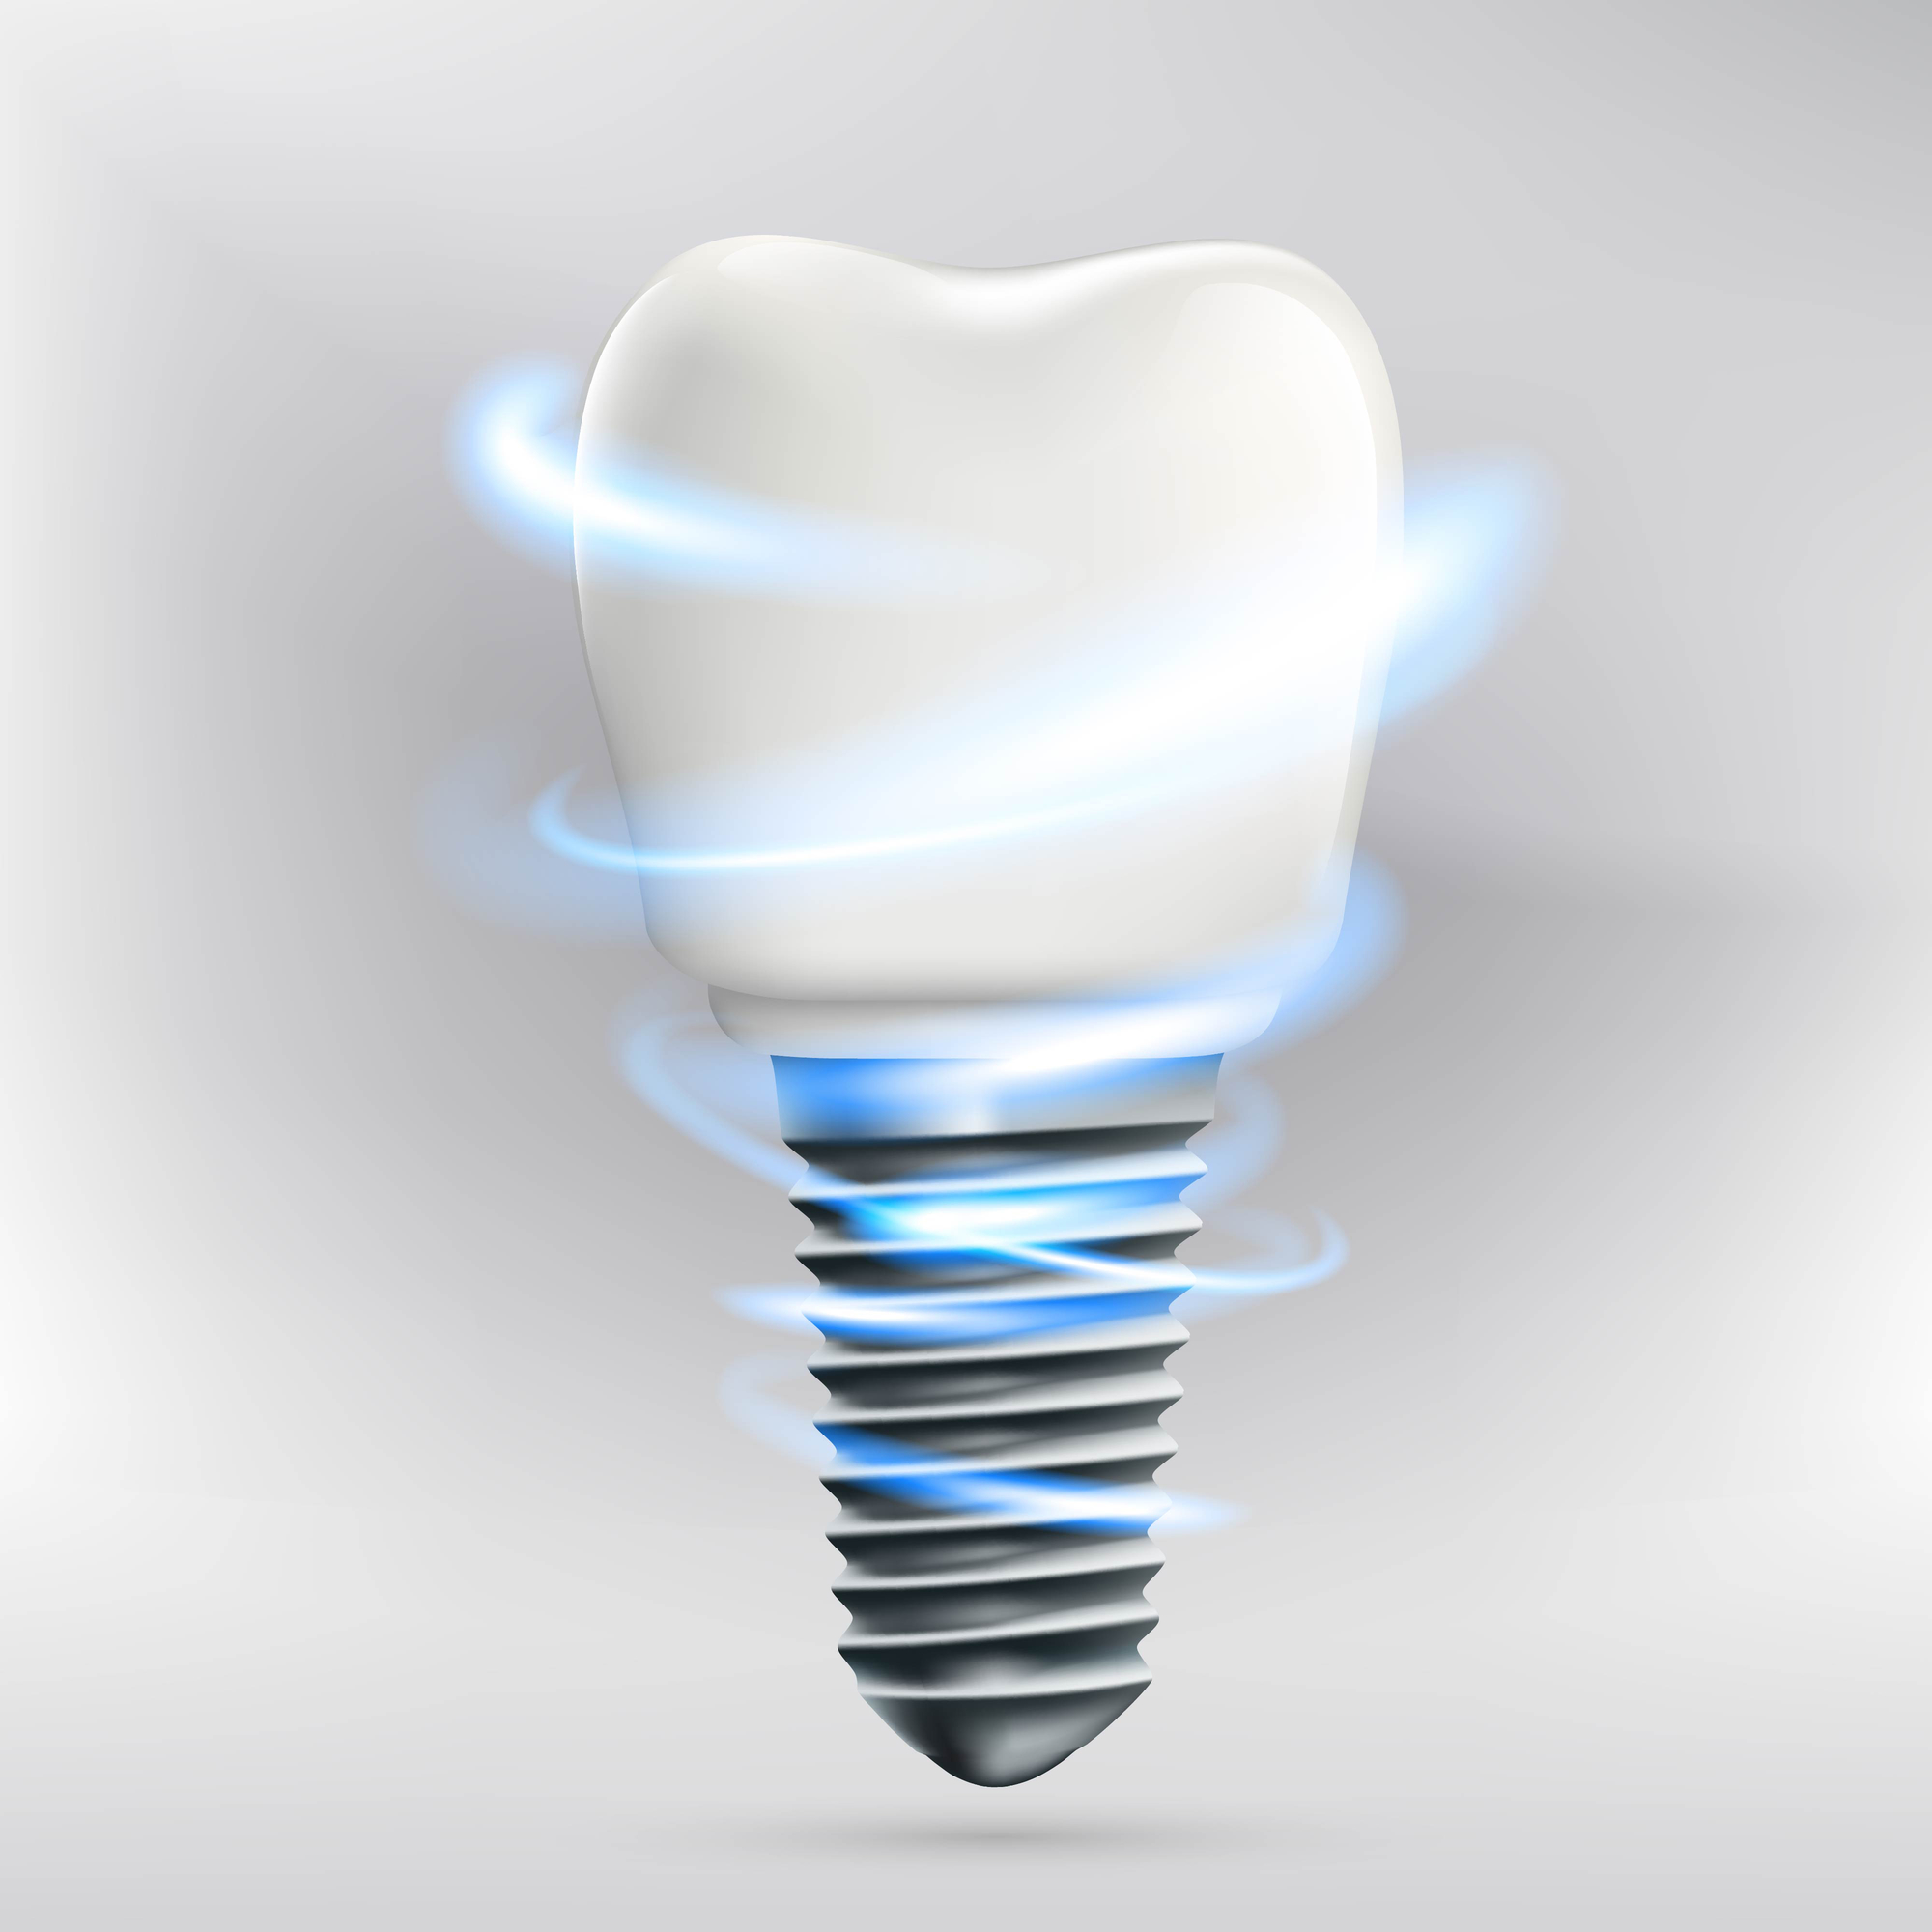 What are the benefits of dental implants in Boca Raton?